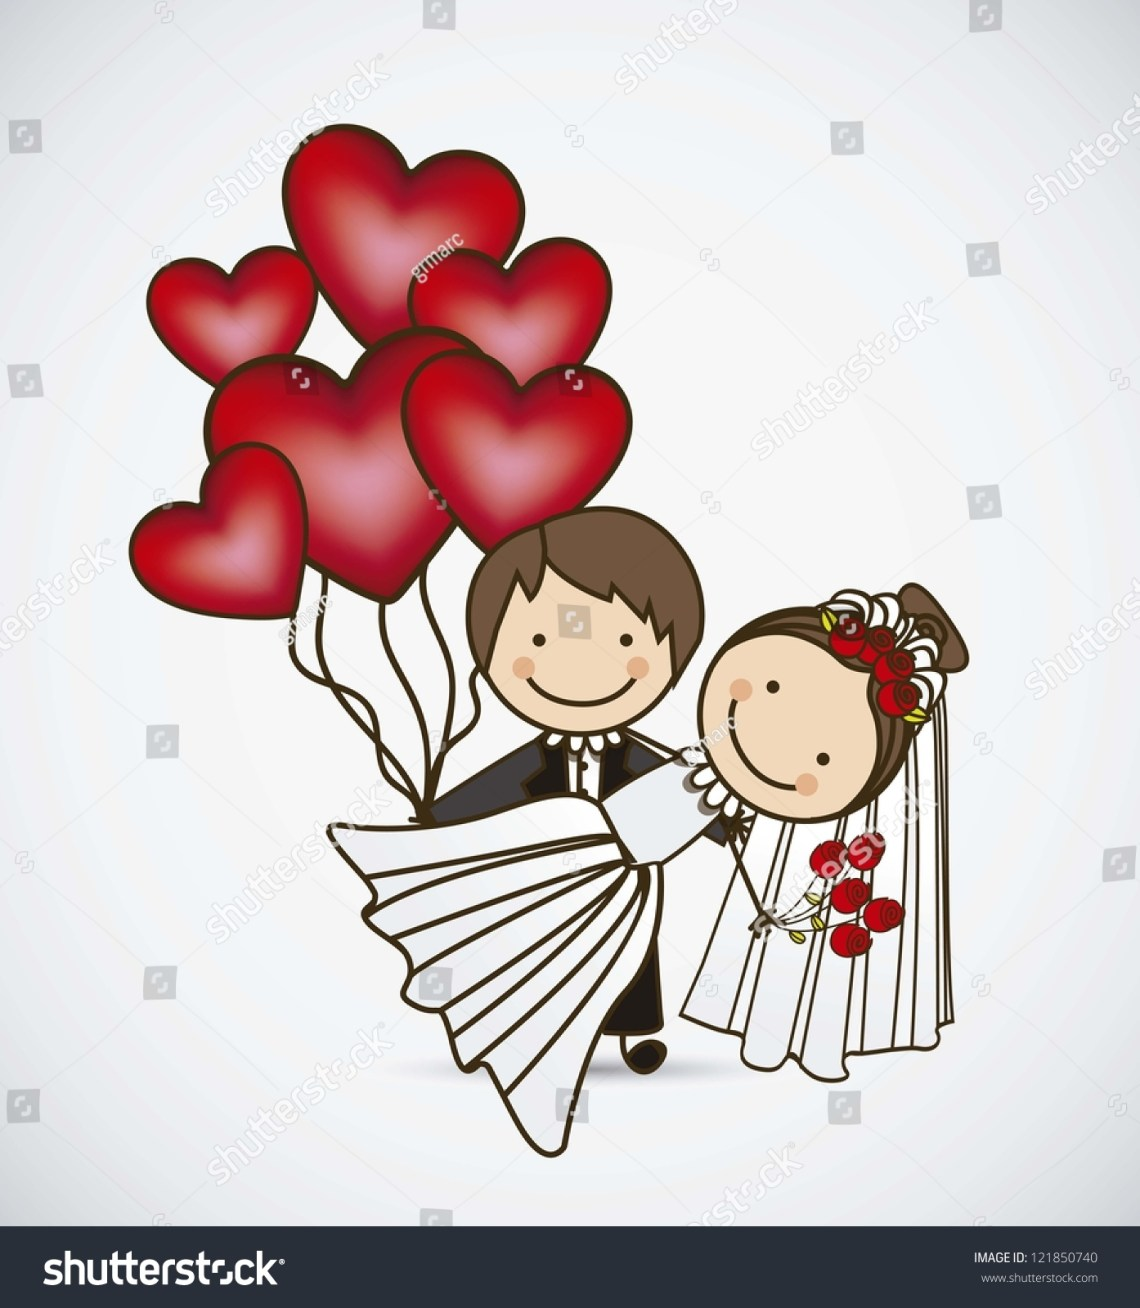 Download Illustration Of Couple With Hearts Balloons, Love Icons ...